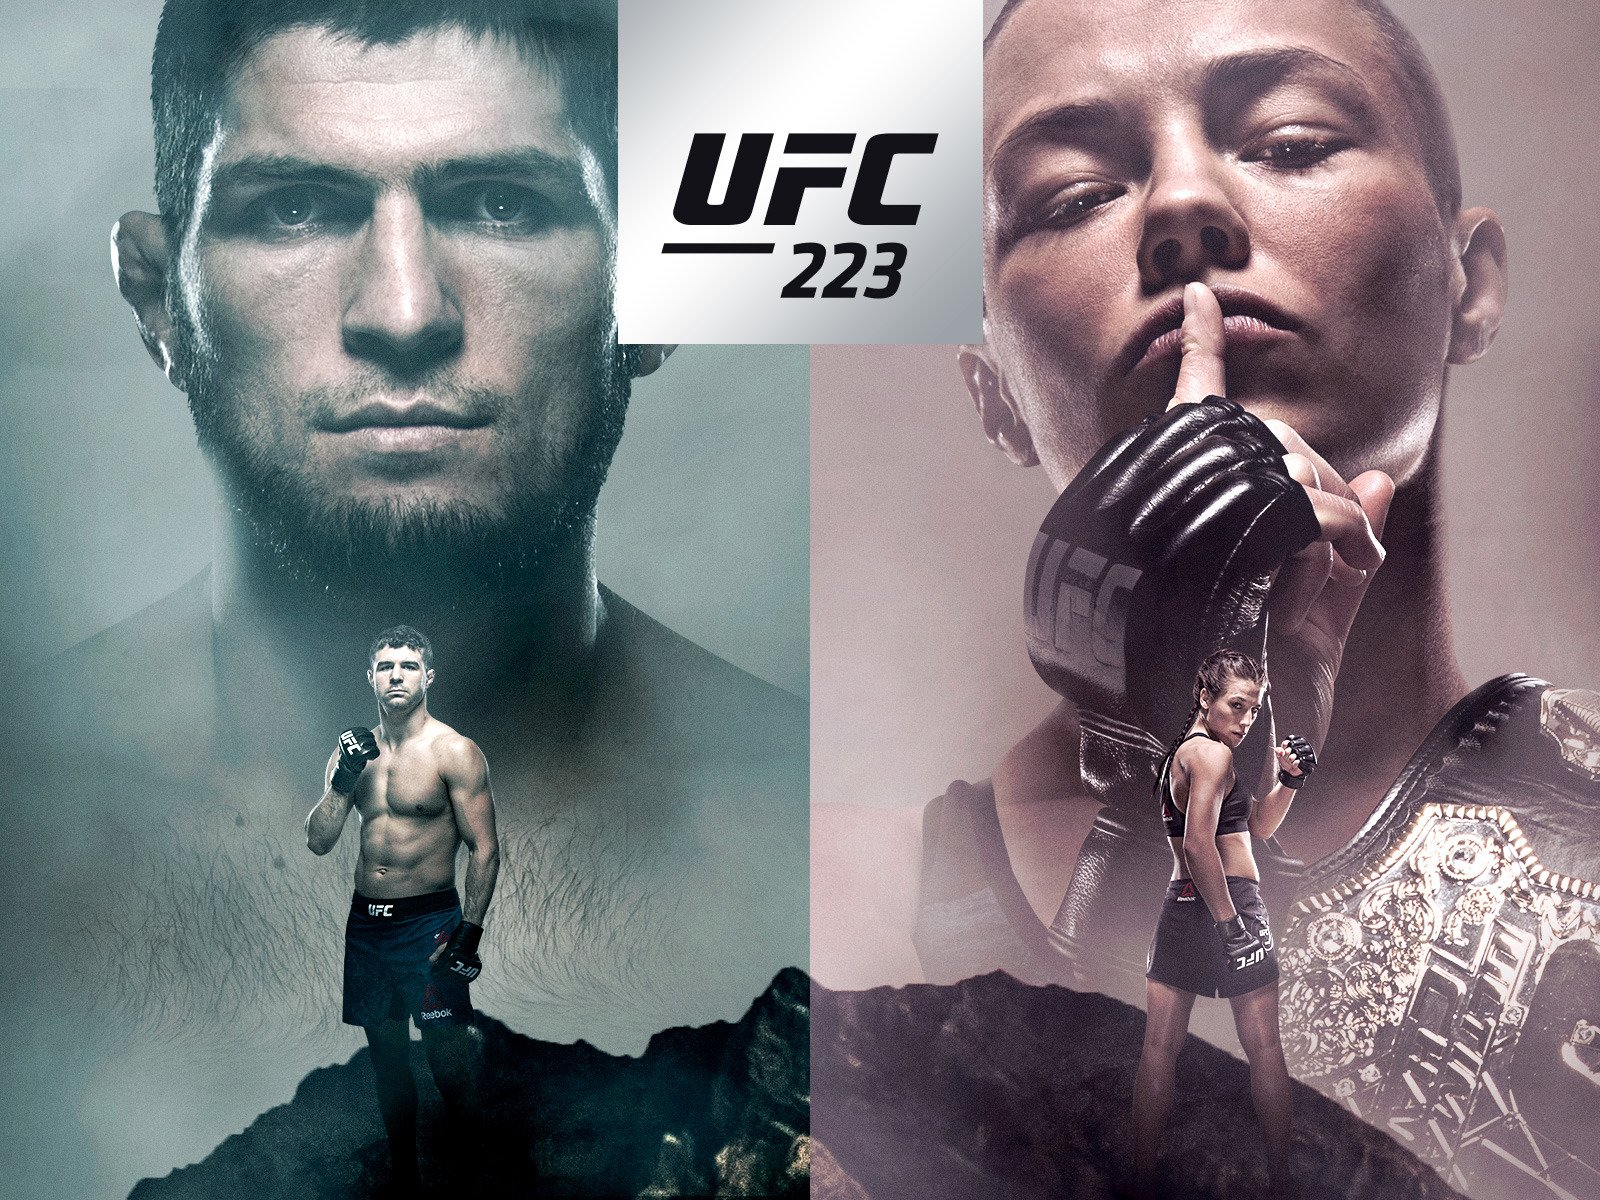 Amazoncom Watch UFC 223 Khabib vs Iaquinta Prime Video 1600x1200